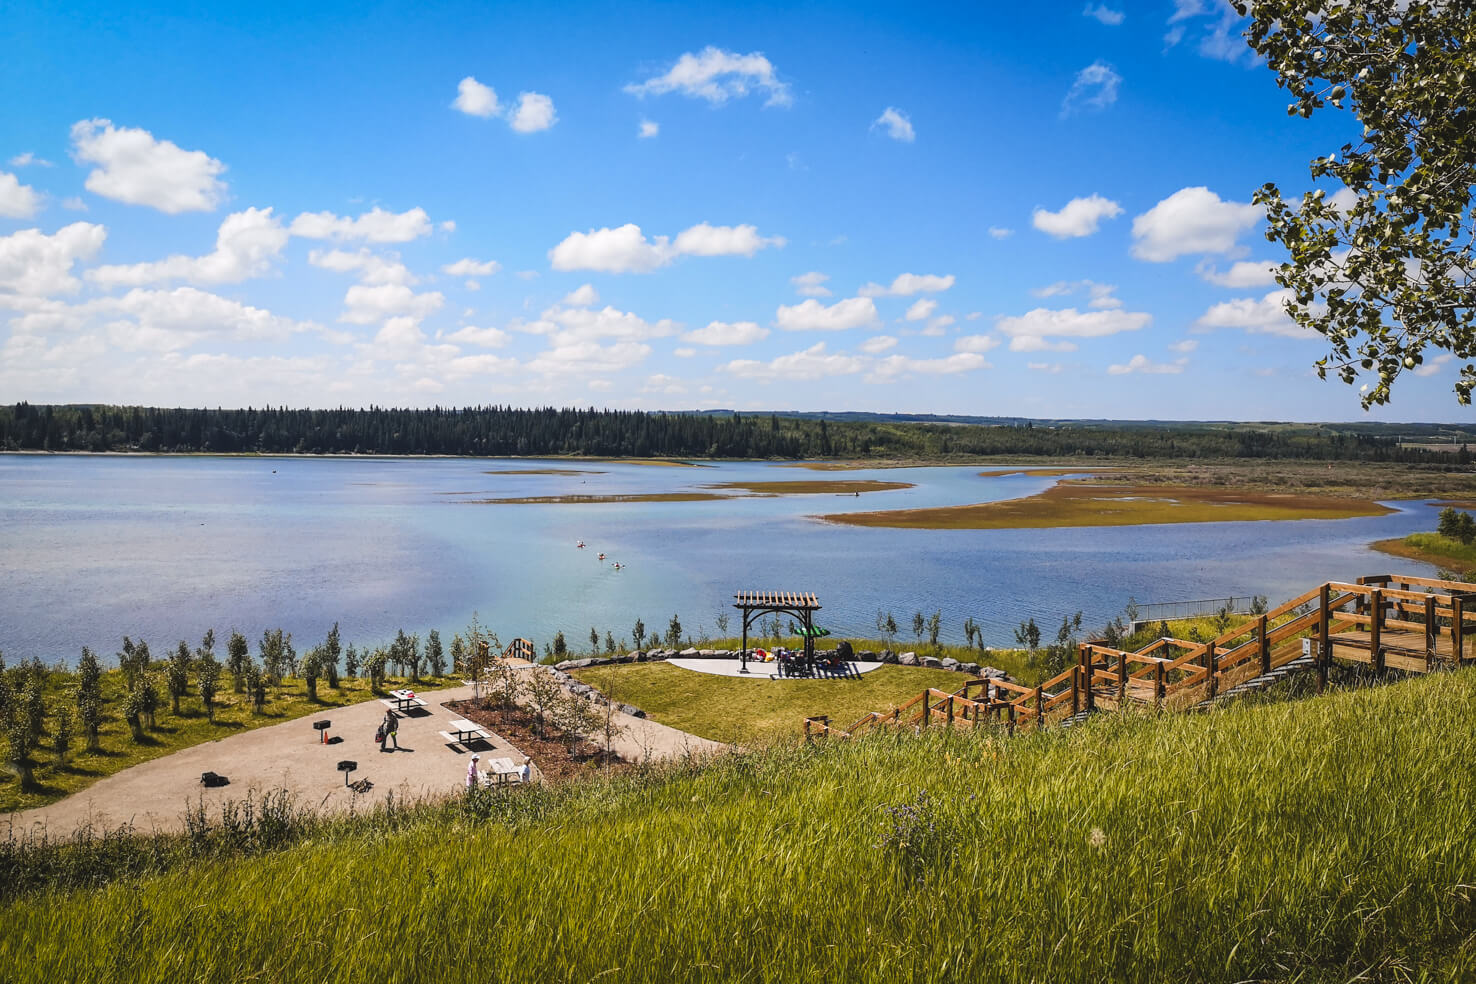 Things to do in Calgary in summer - Have barbeque in North Glenmore Park